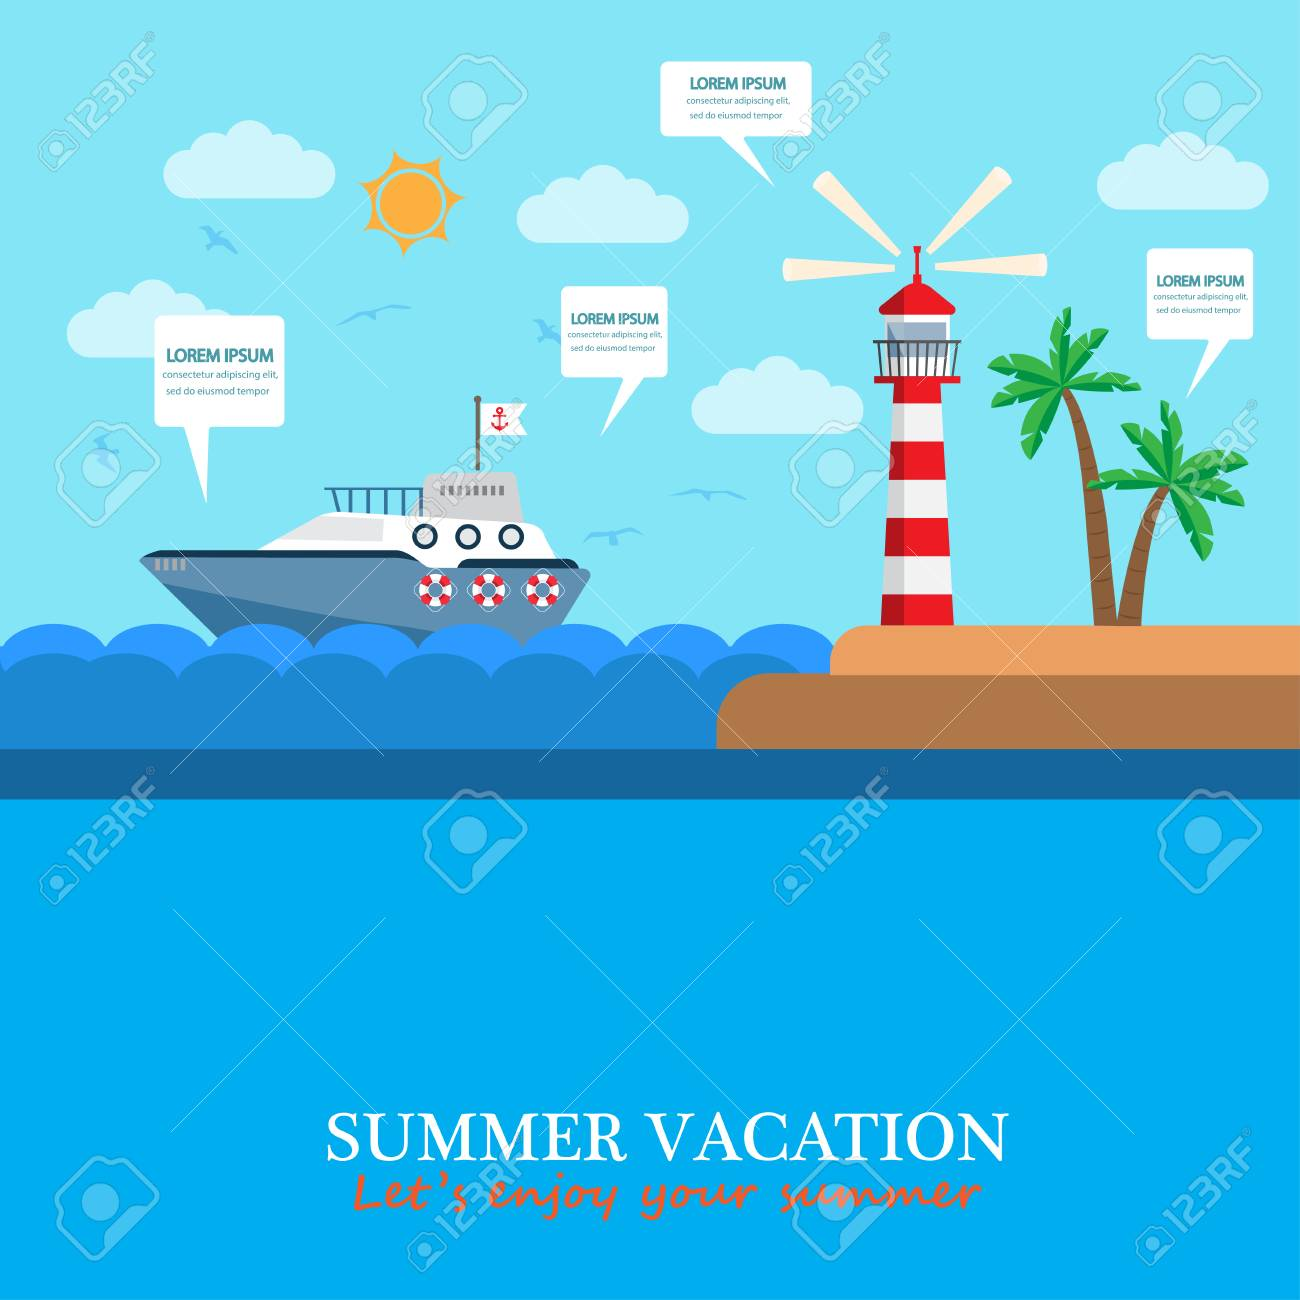 Beach Background For Your Summer Holiday And Vacation. Can Be Used For Cover  Page,